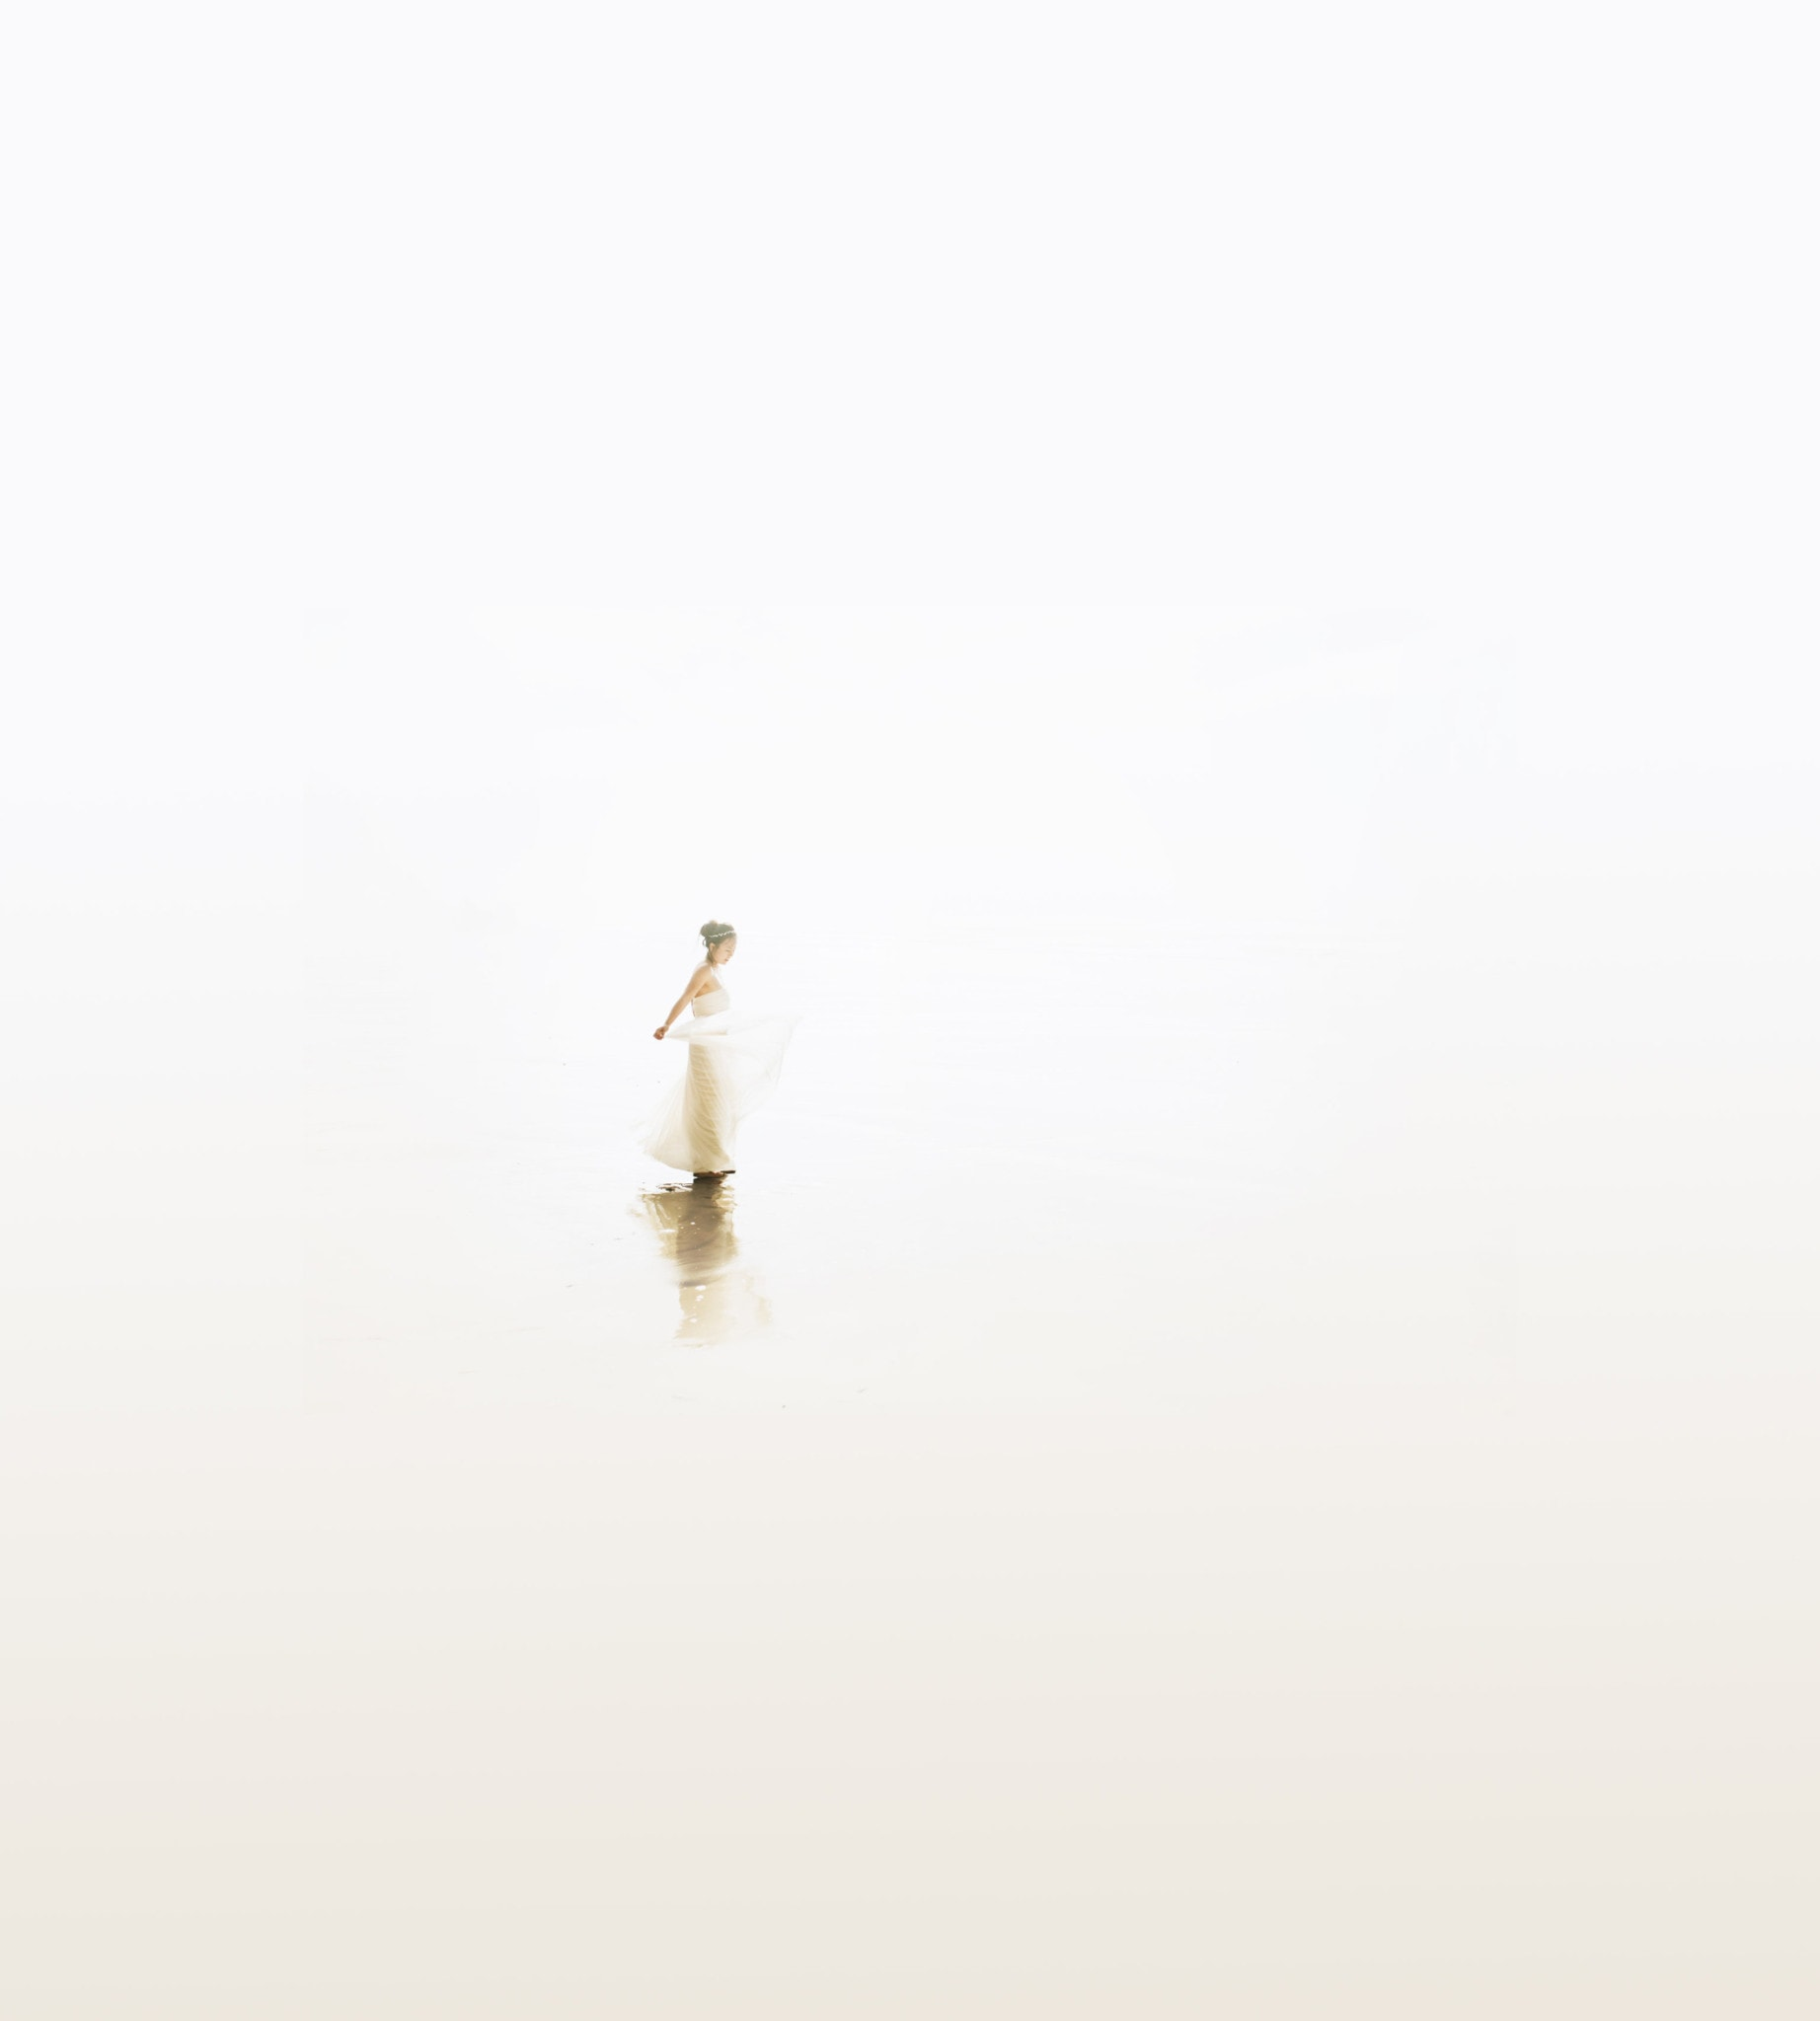 Oregon coast whiteout minimalist bride portrait Portland Wedding Photographer Marcela Pulido